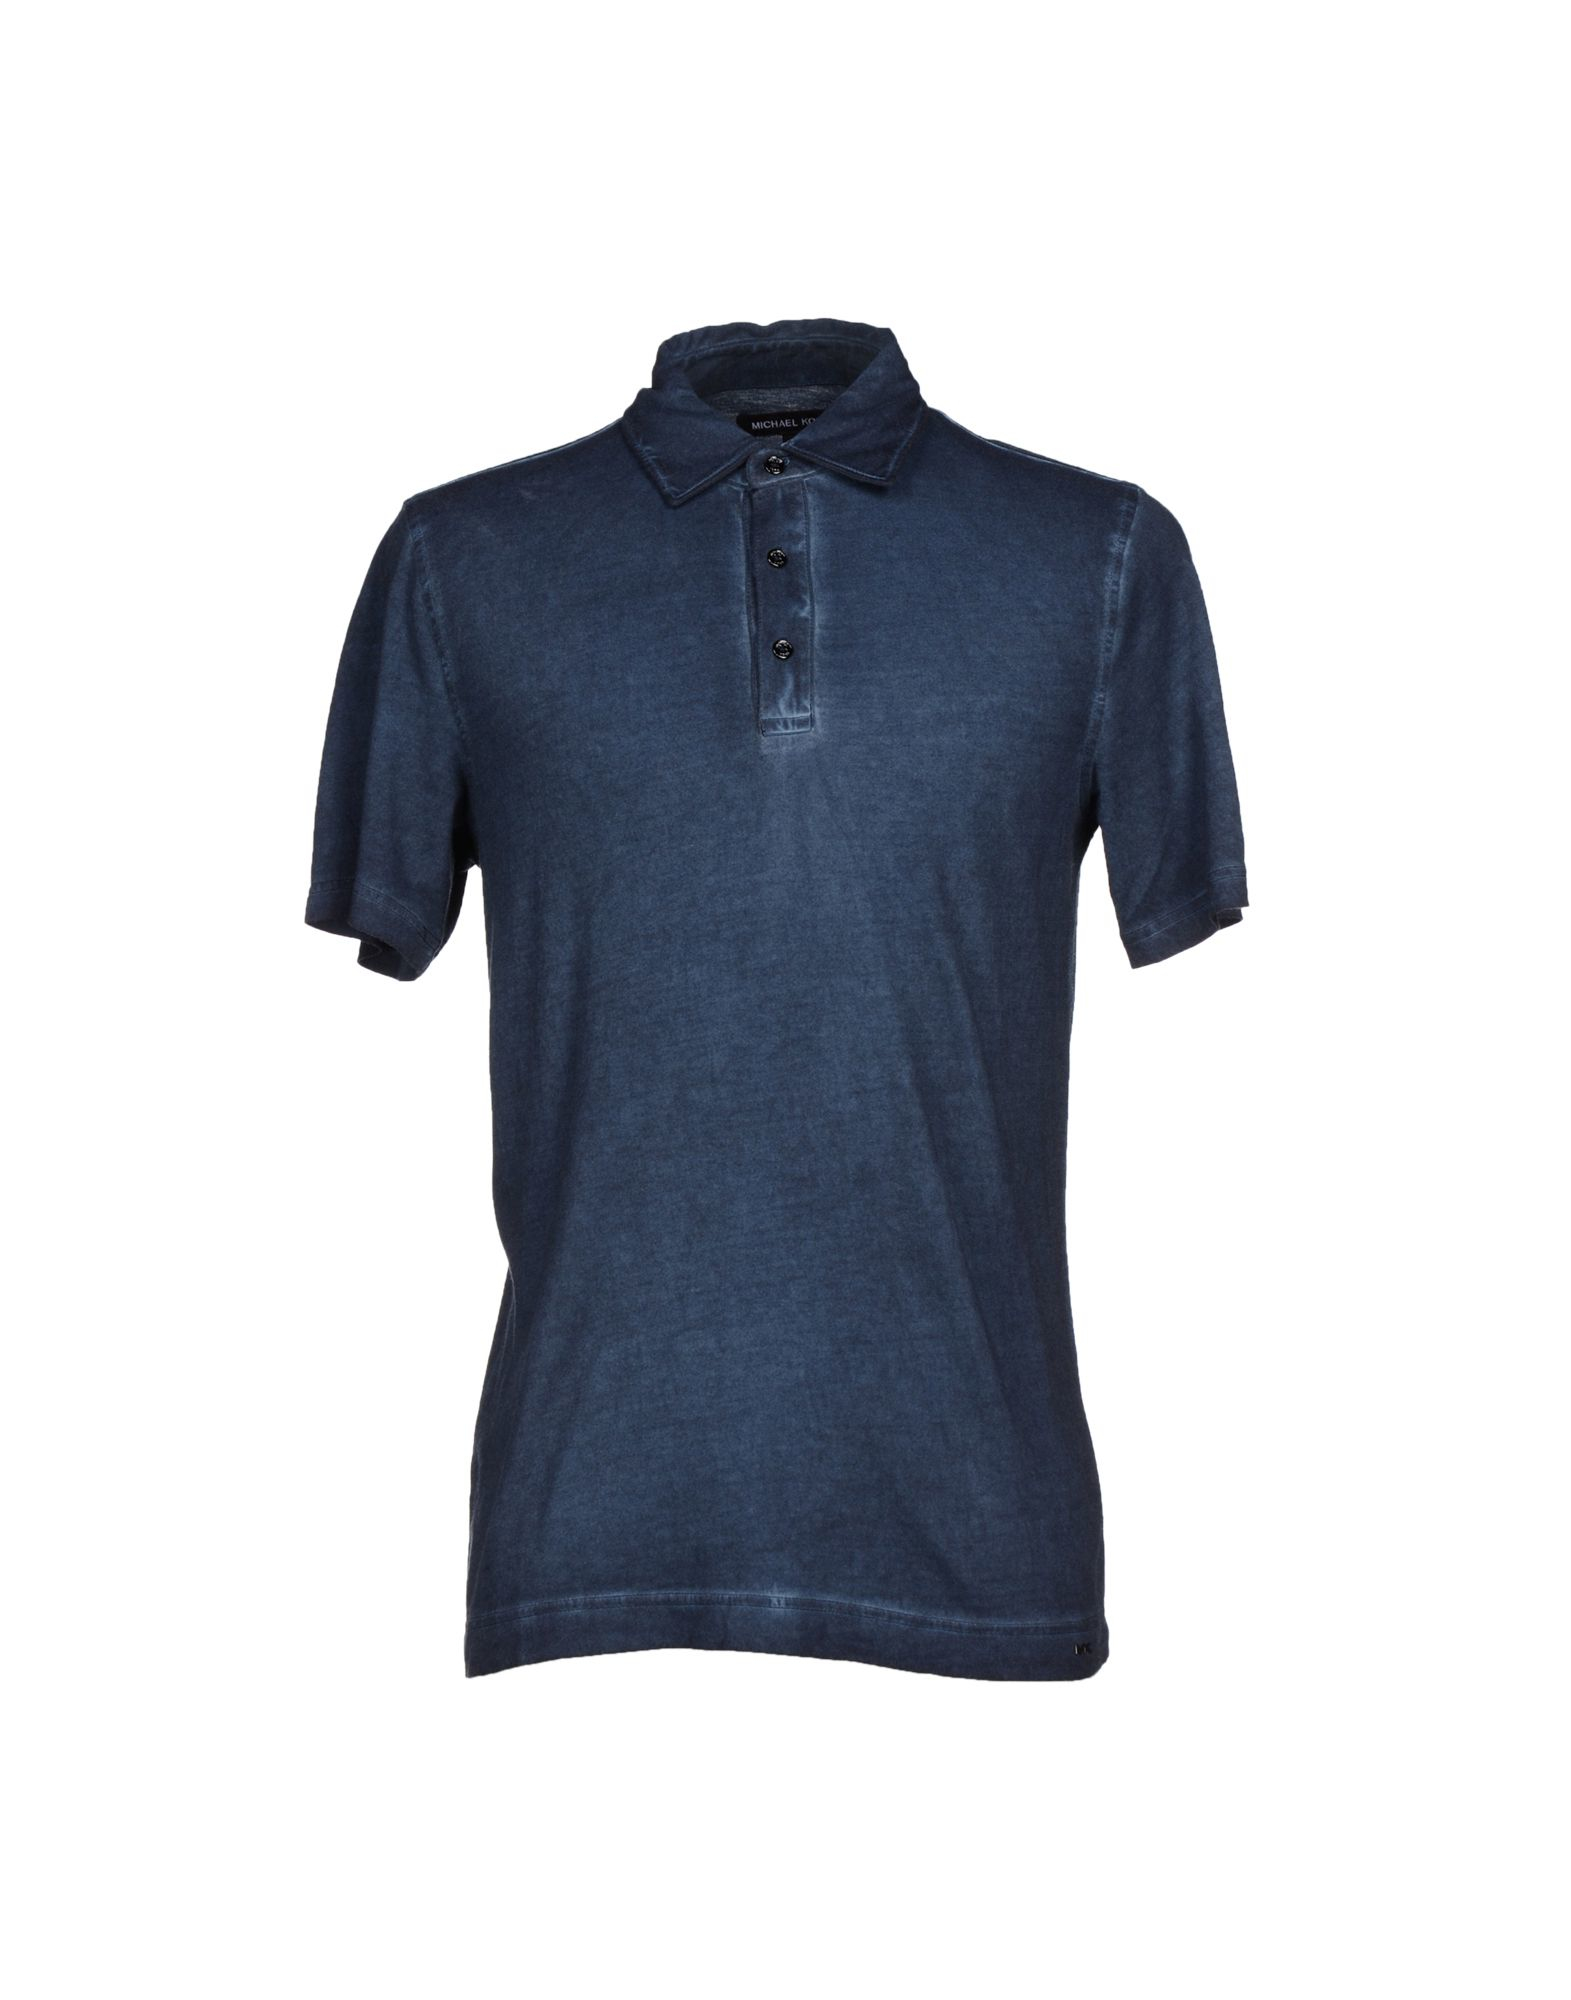 michael kors polo shirt in gray for men slate blue lyst. Black Bedroom Furniture Sets. Home Design Ideas